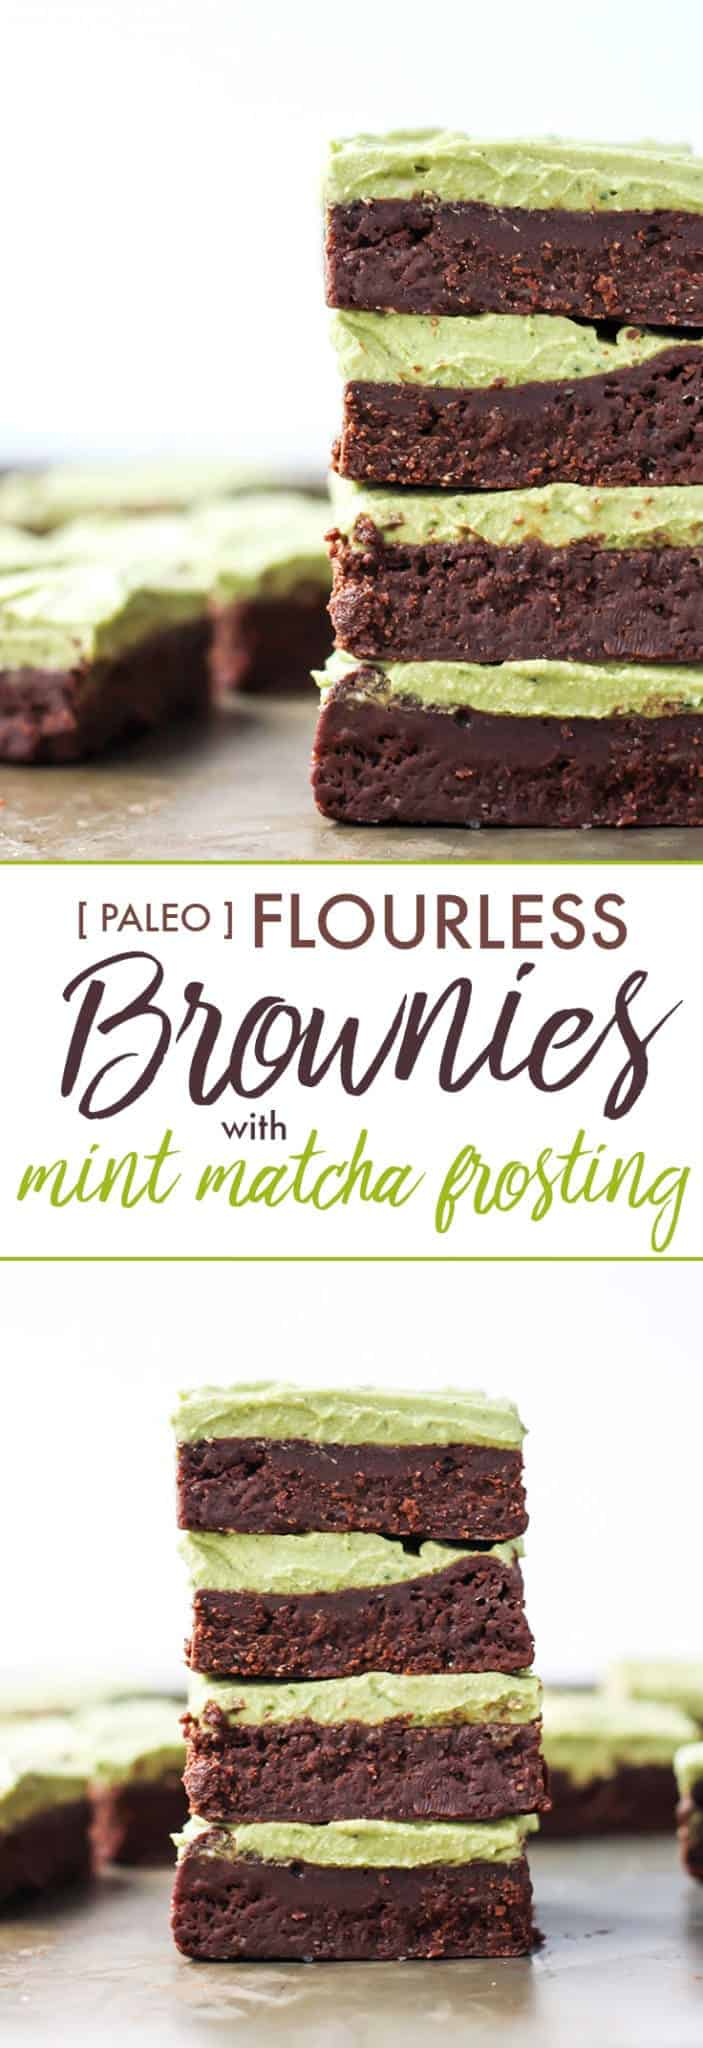 The most fudgy brownies you've ever had, plus a healthy mint matcha frosting.